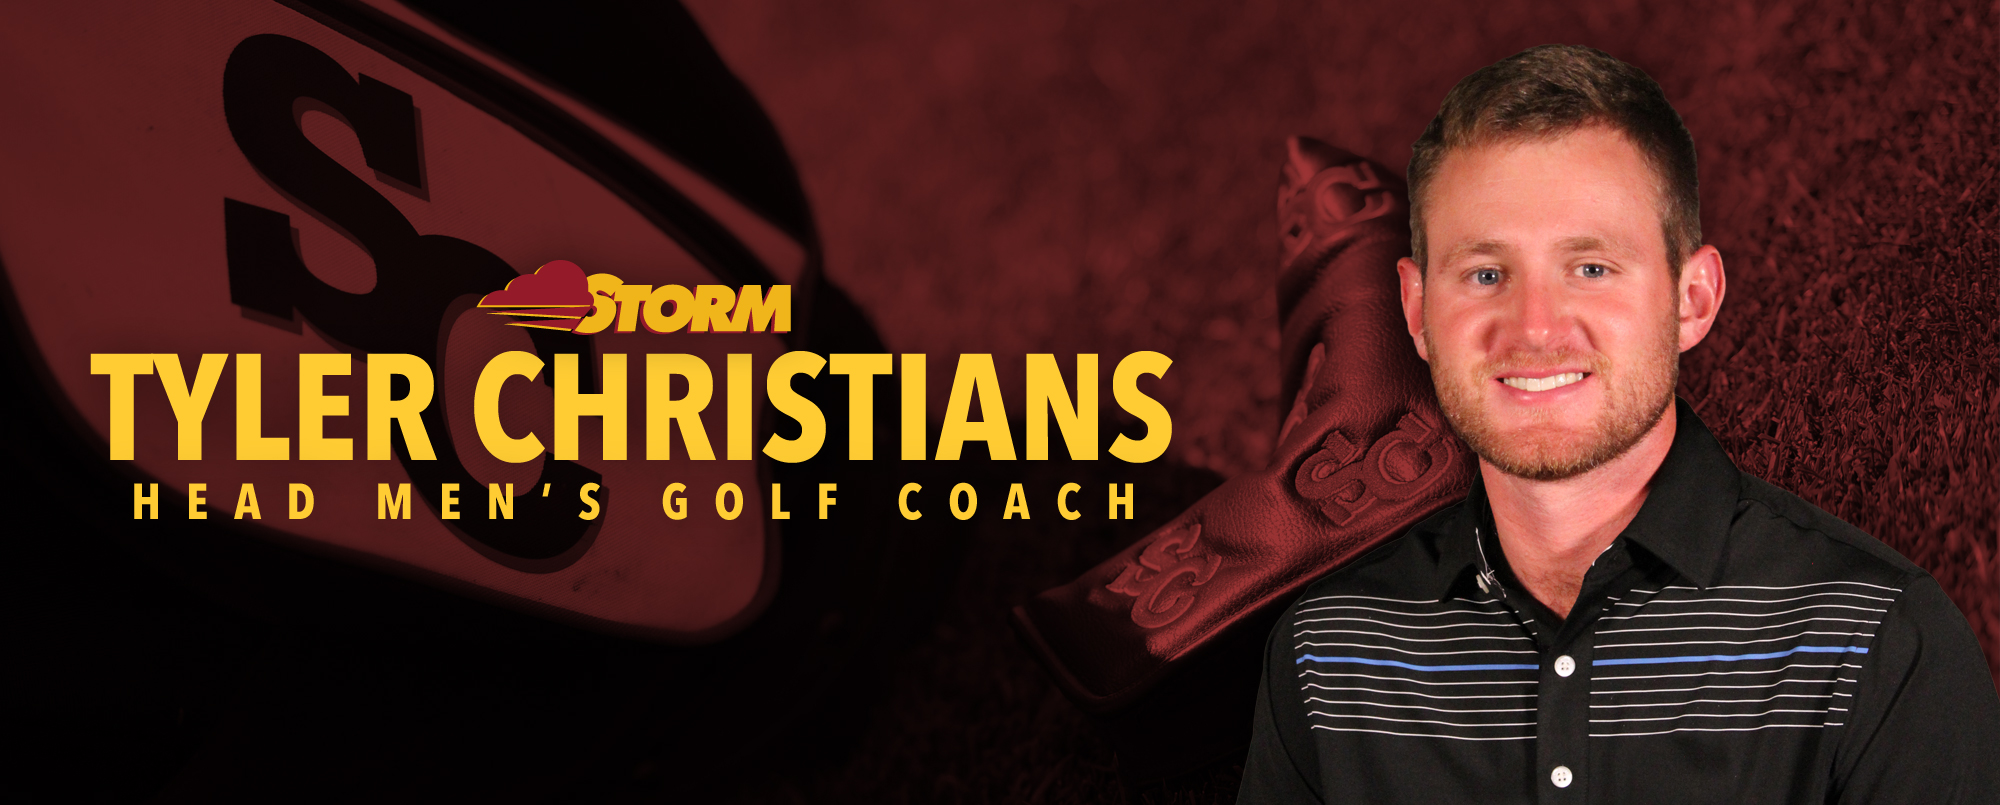 Tyler Christians has been hired as head men's golf coach.